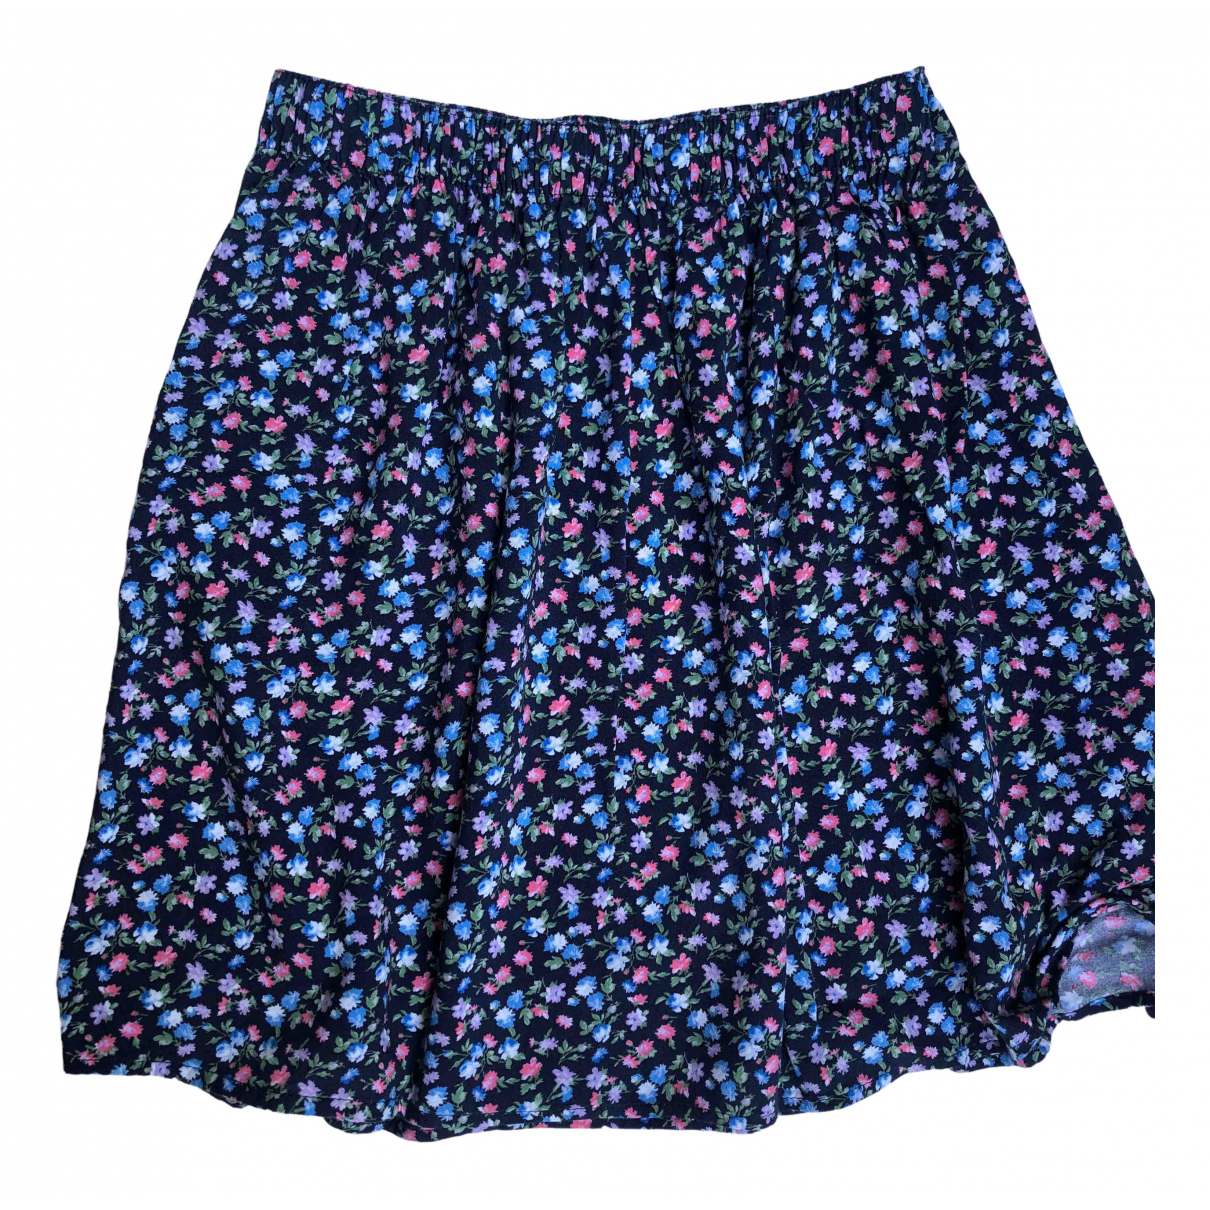 Abercrombie & Fitch \N Multicolour Cotton skirt for Women S International